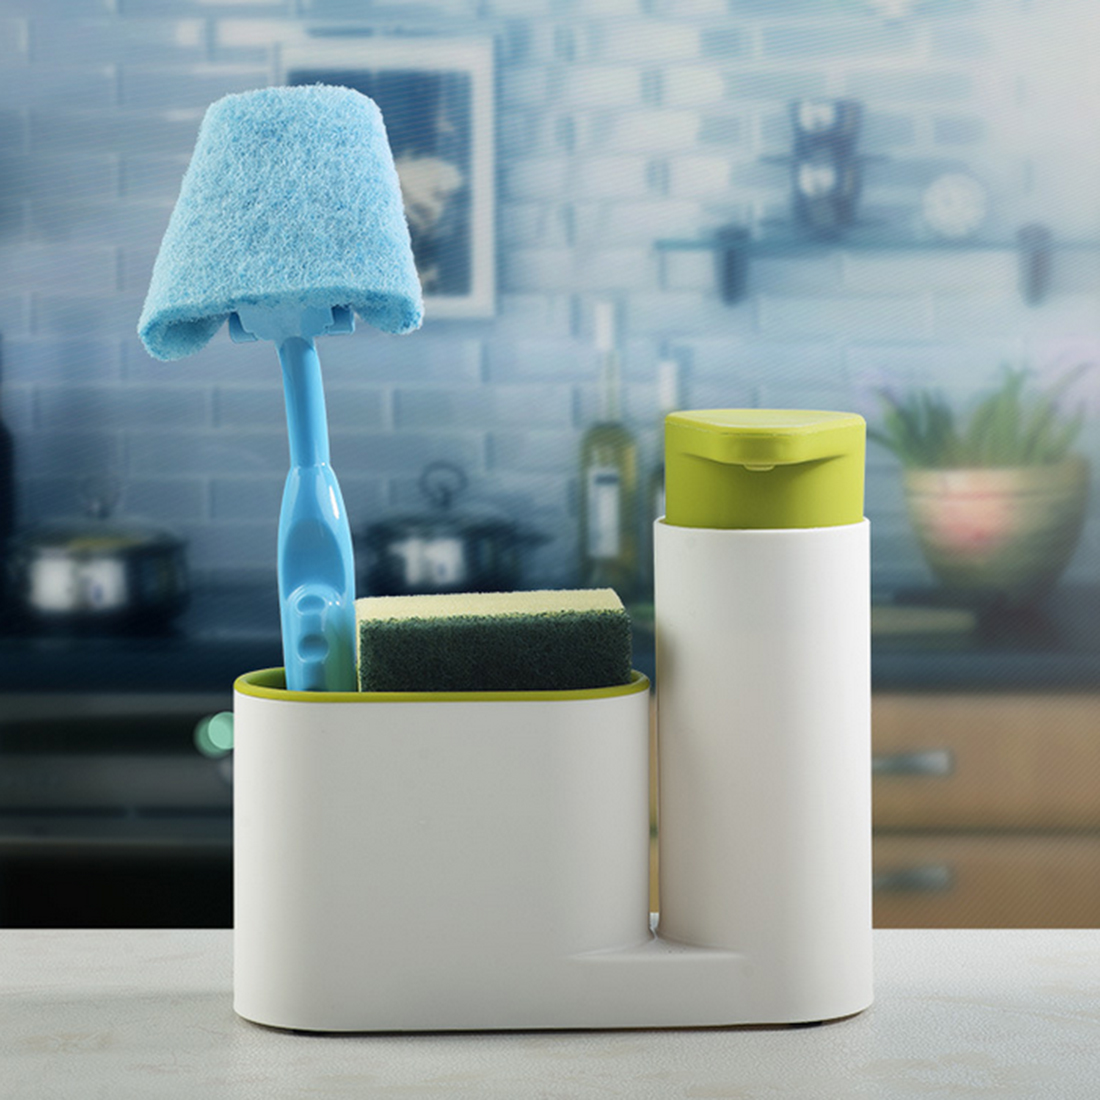 HIPSTEEN 3 Piece Sink Tidy Set Household Items 2 Containers and a Sponge Brush Holder Green-in Storage Boxes & Bins from Home & Garden on ...